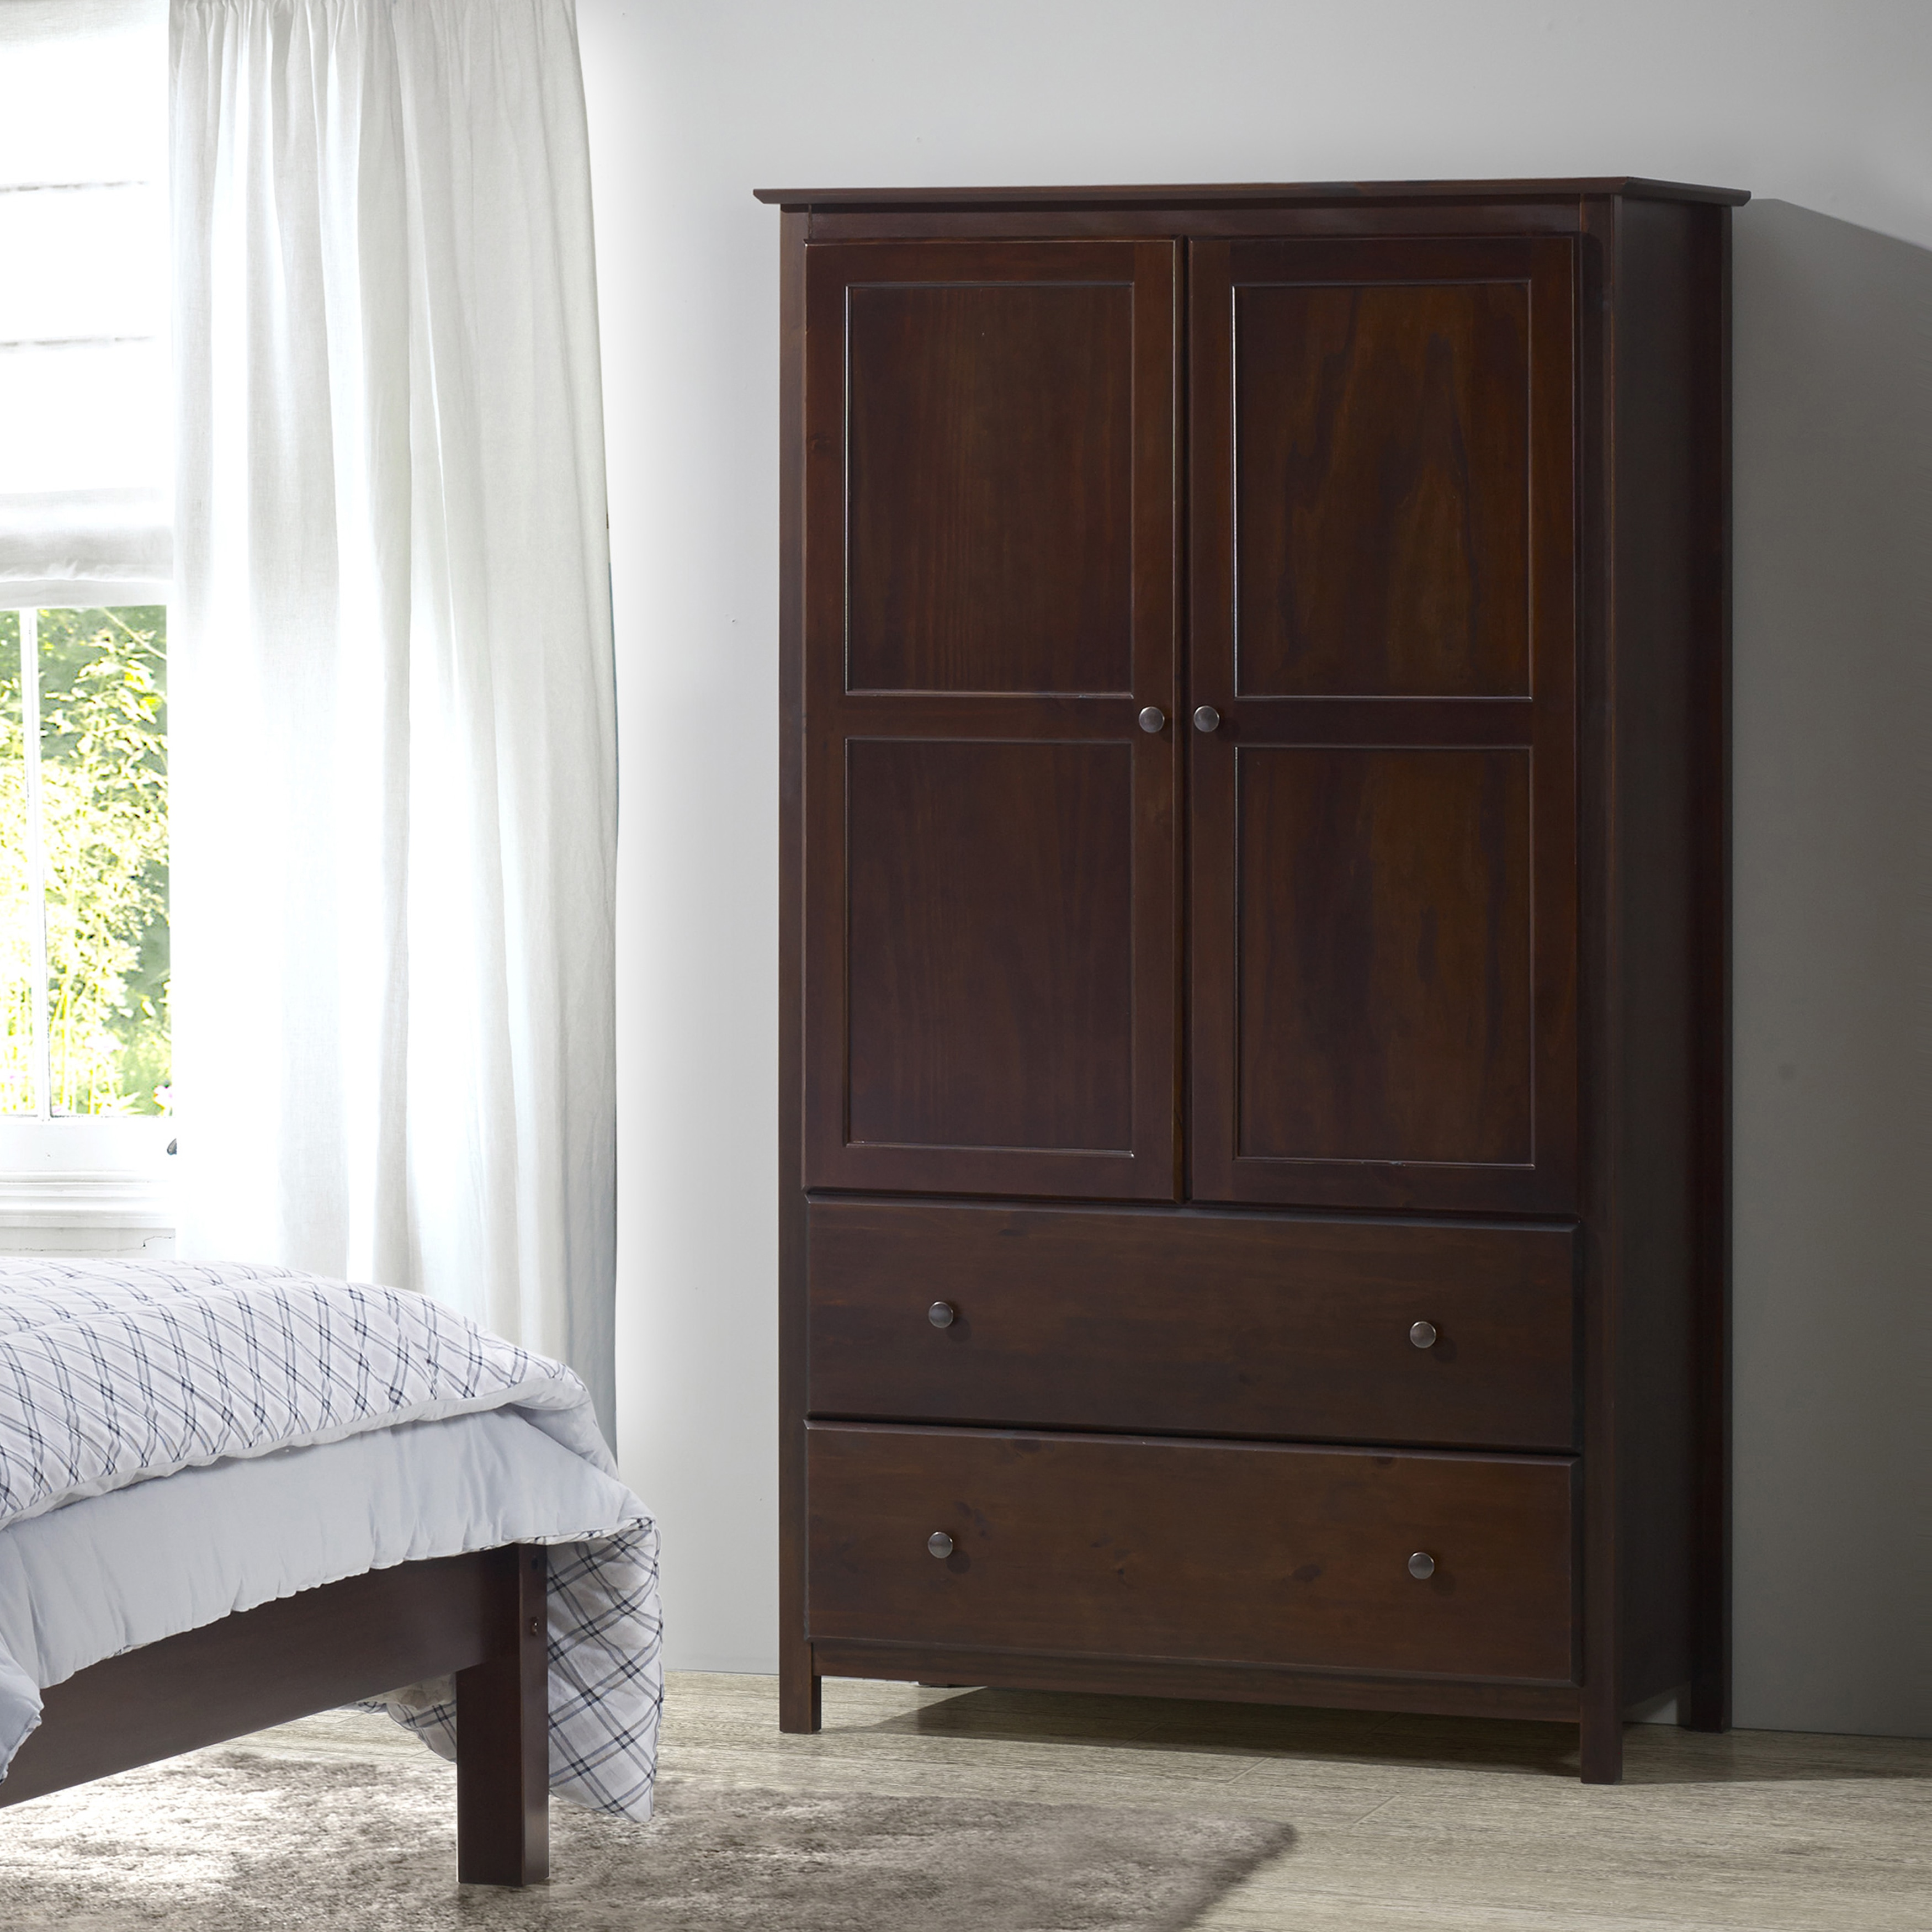 Grain Wood Furniture Shaker 2 Door Solid Armoire Cherry Finish 41x72x22 Free Shipping Today 10034535